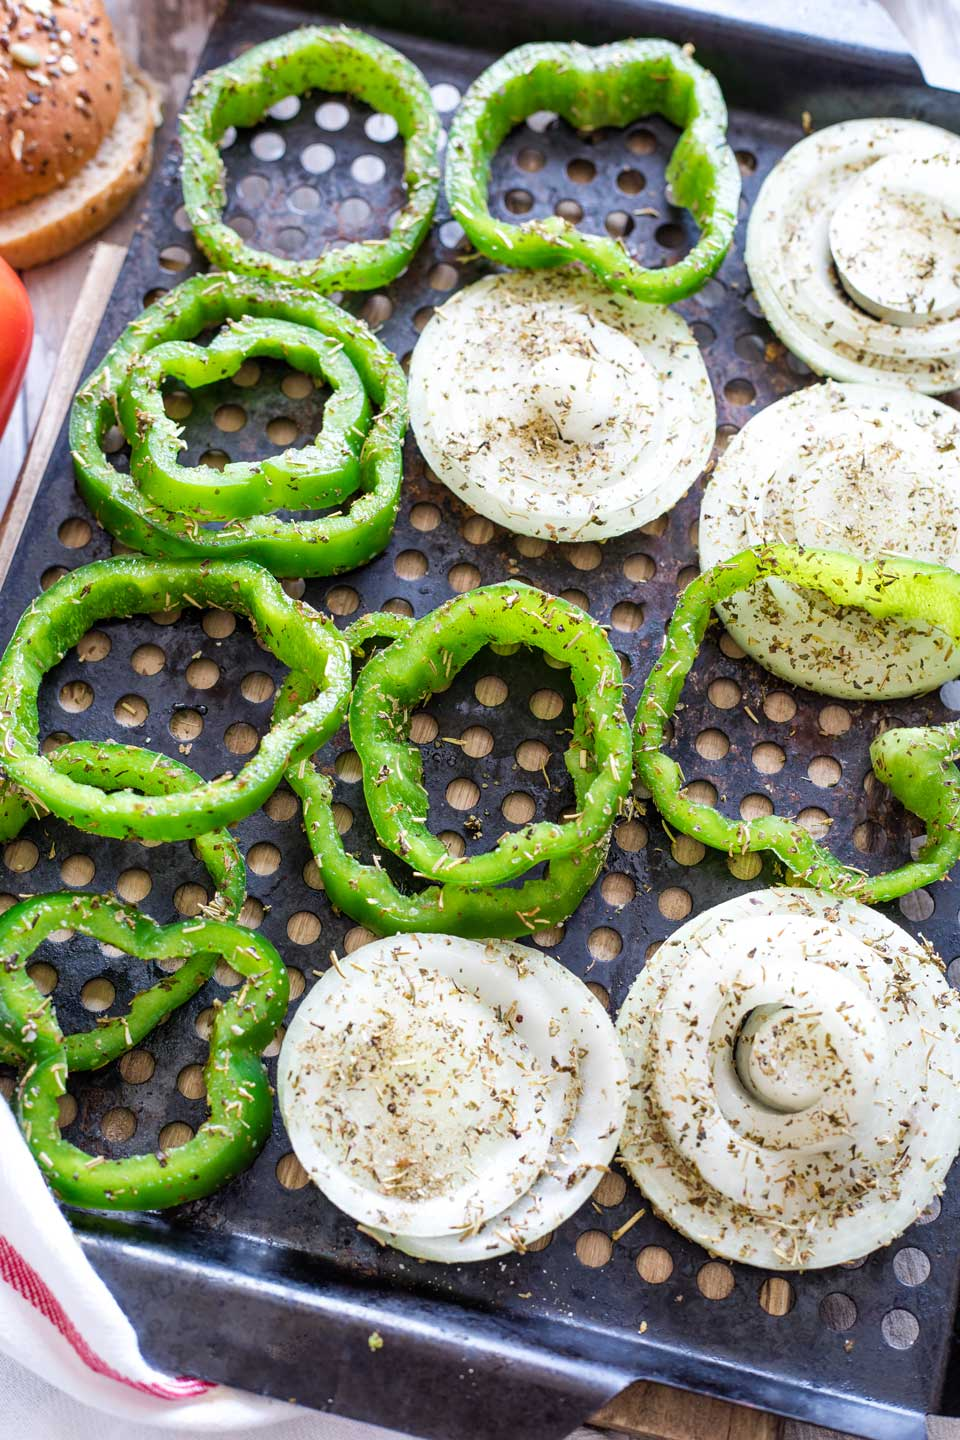 Raw peppers and onions coated in Italian seasoning, laid out on grill pan.